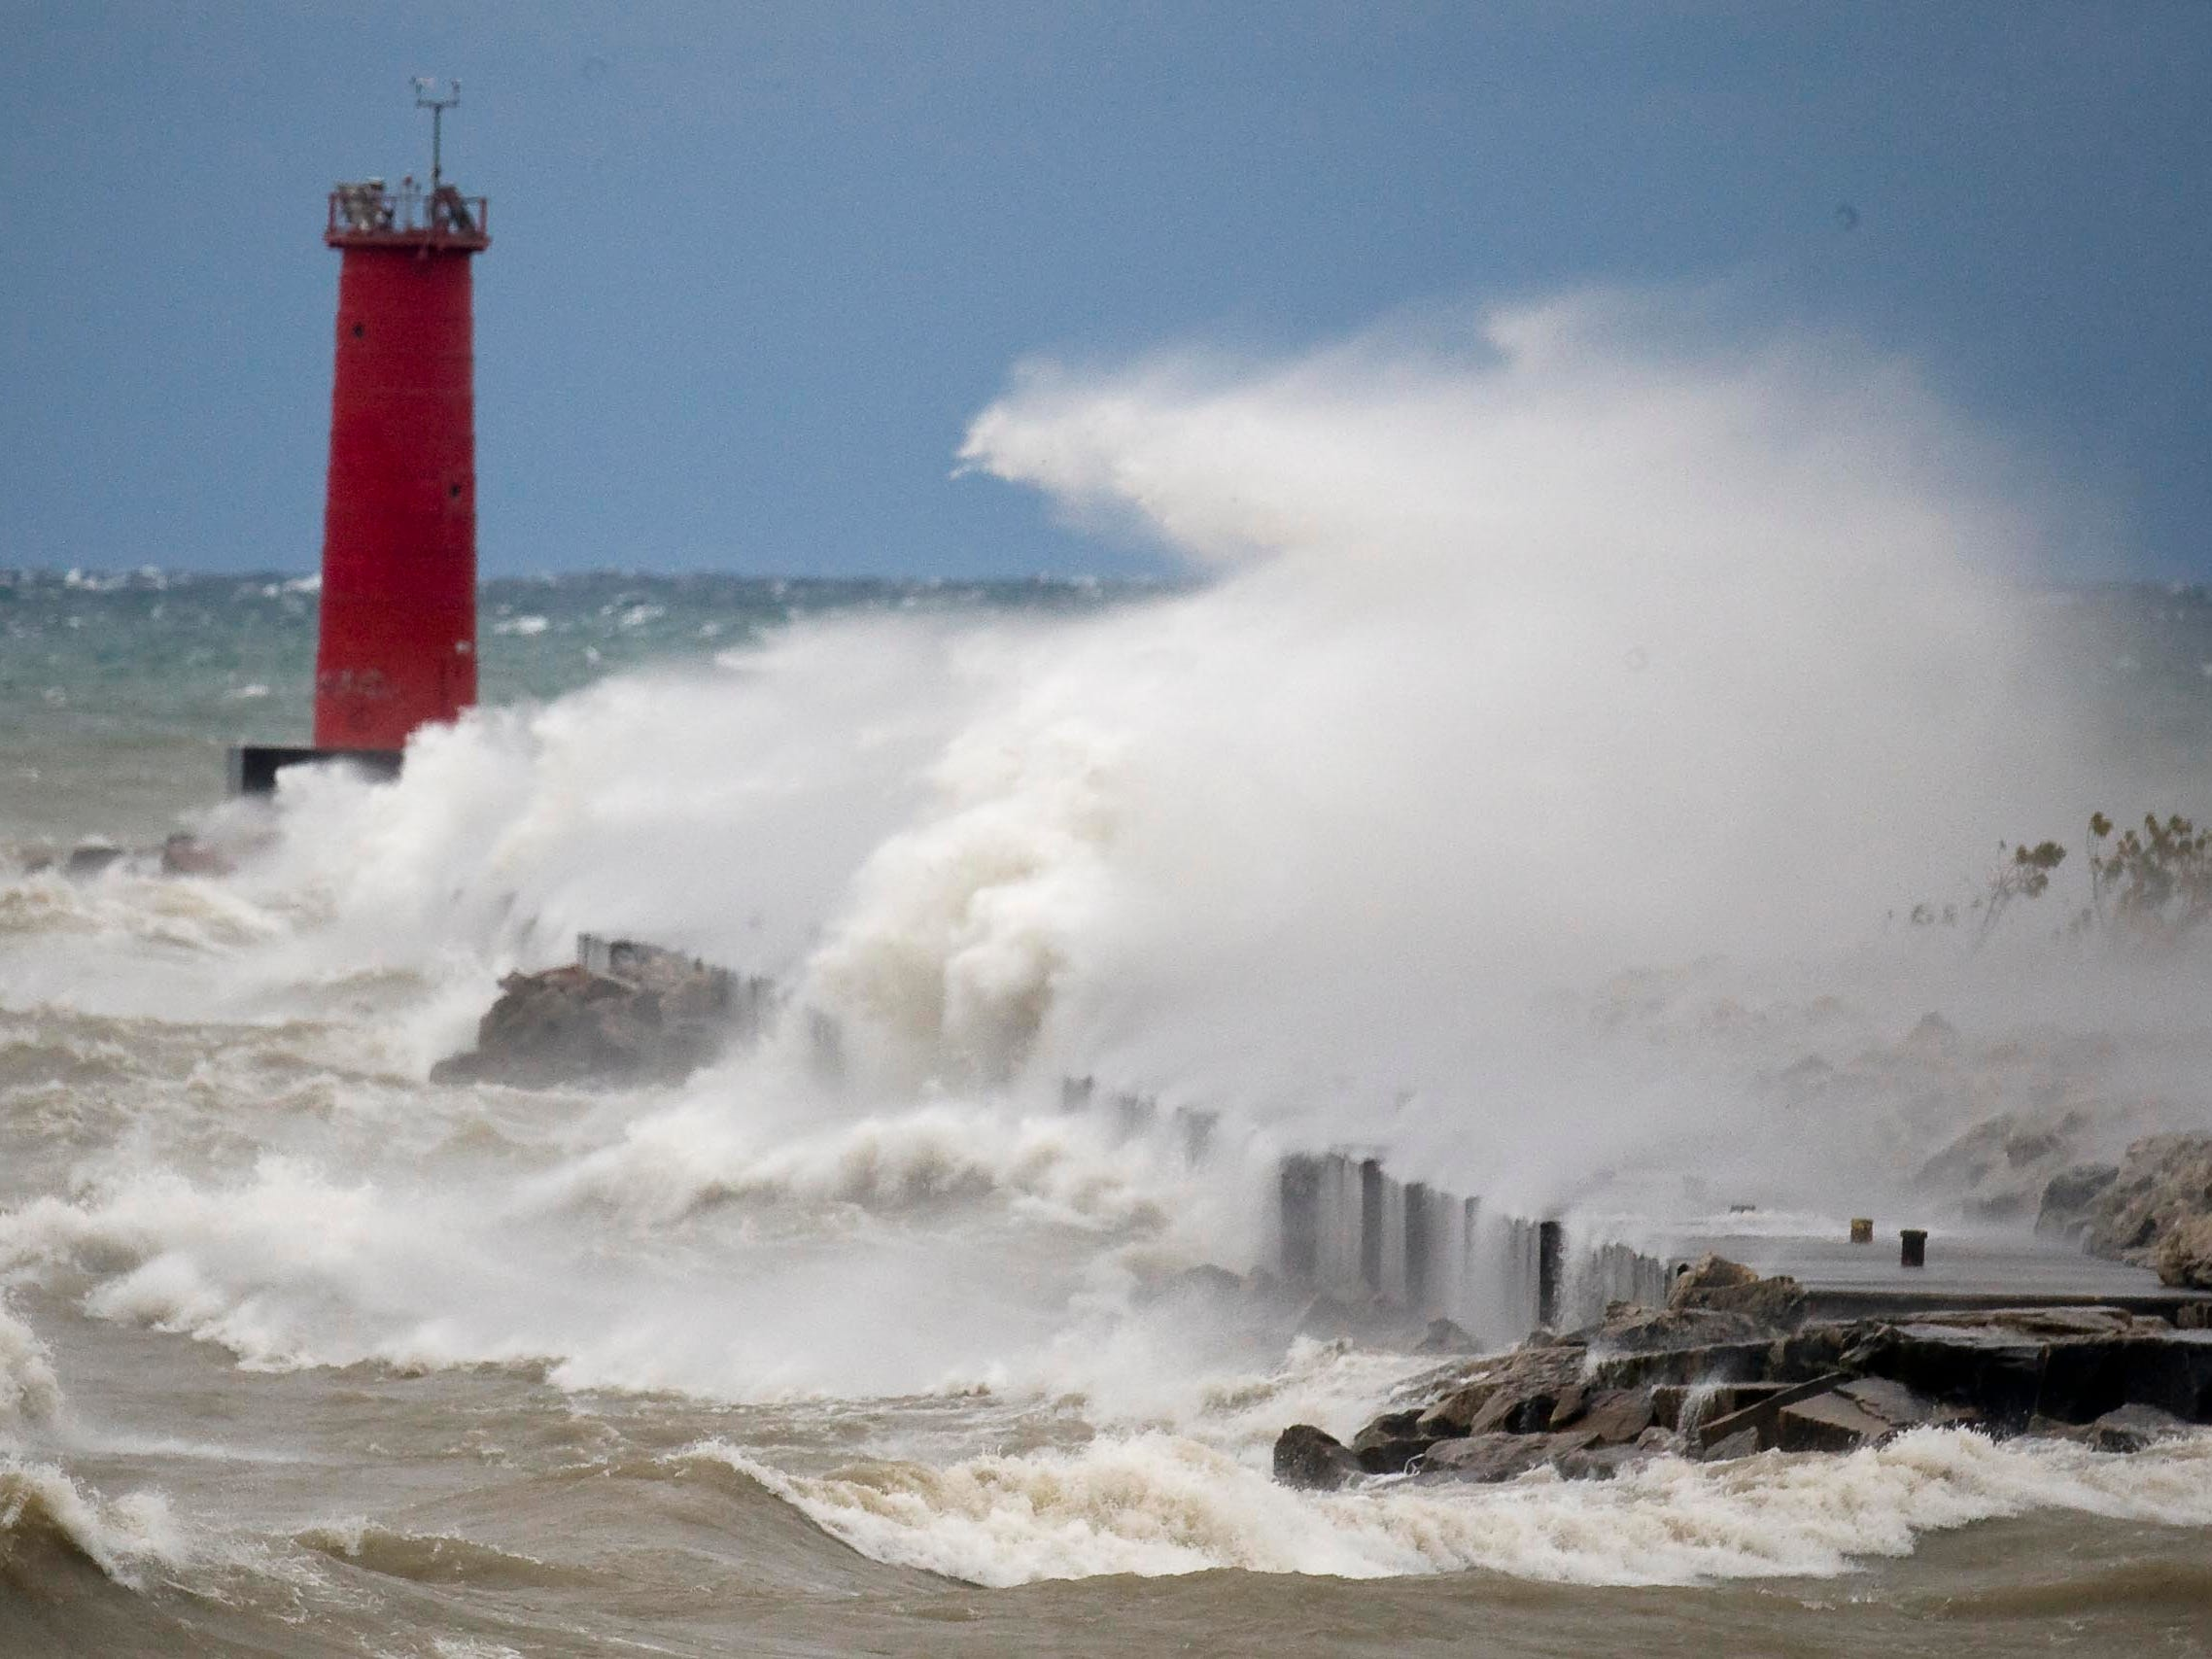 Strong winds blow waves nearly as tall as the Sheboygan lighthouse on Oct. 19, 2011, in Sheboygan, Wis.  FILE PHOTO